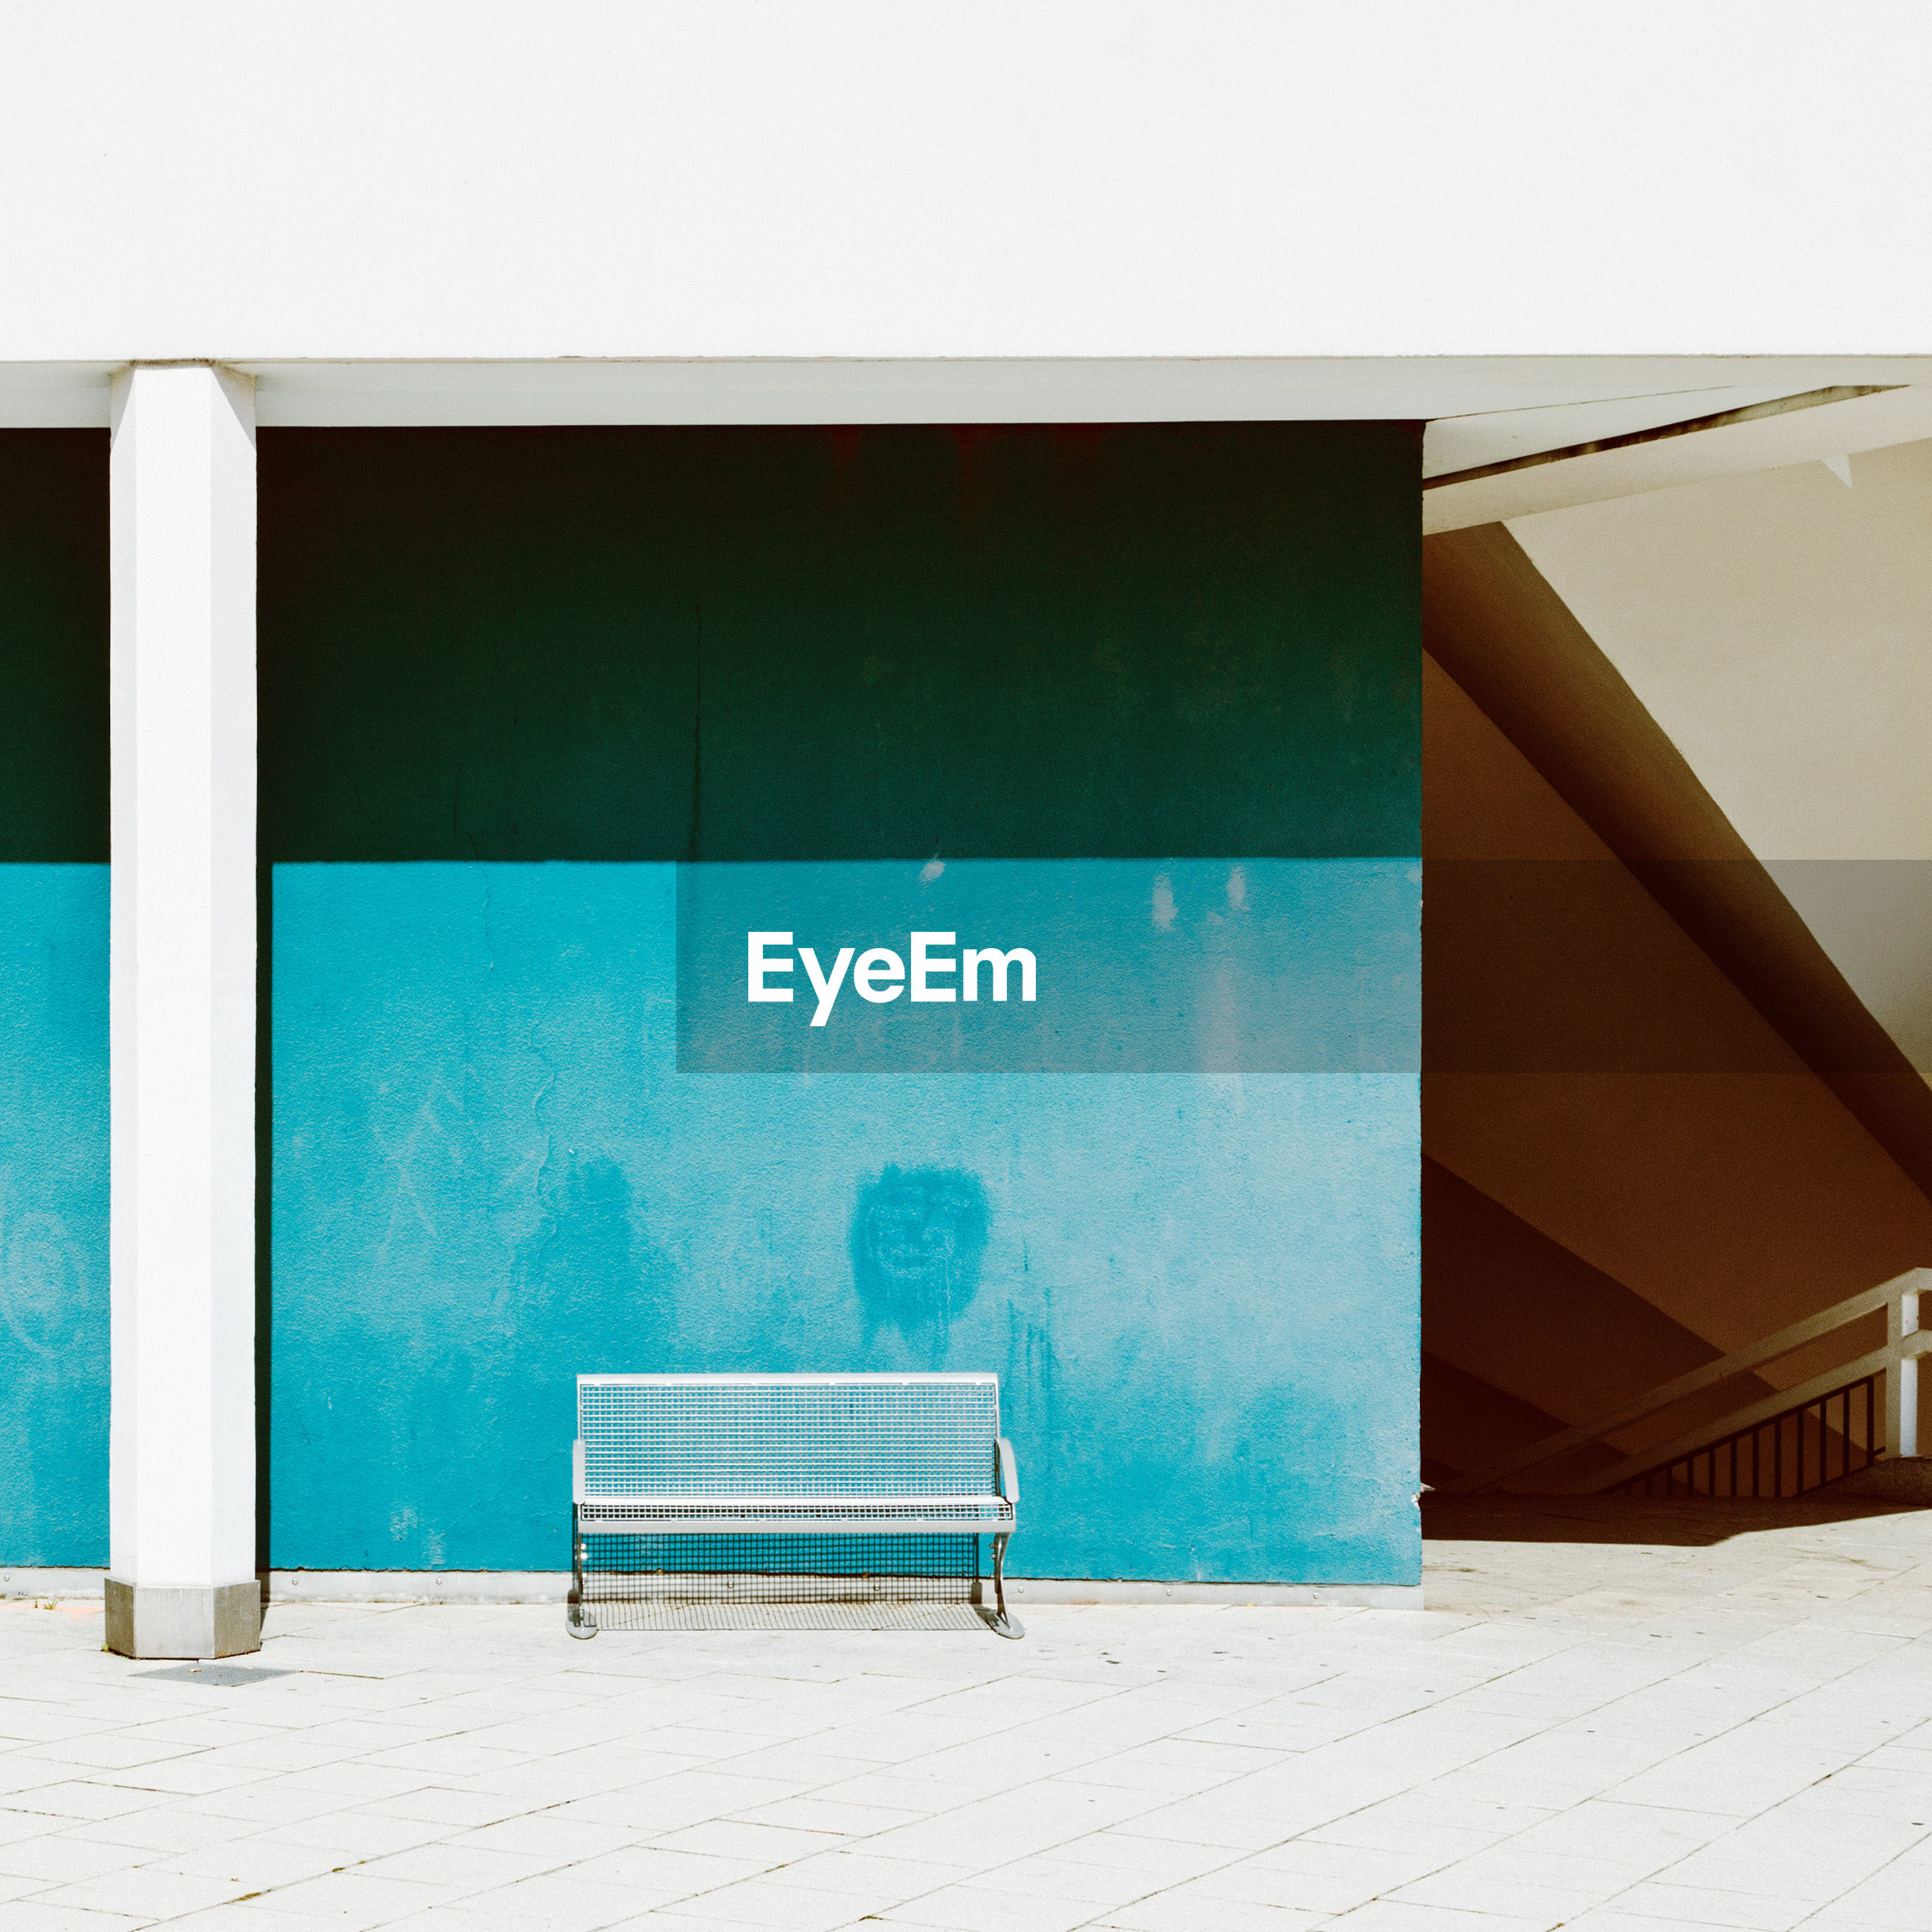 seat, architecture, chair, absence, empty, built structure, no people, day, wall - building feature, bench, blue, nature, sunlight, building exterior, outdoors, flooring, relaxation, footpath, railing, swimming pool, turquoise colored, luxury